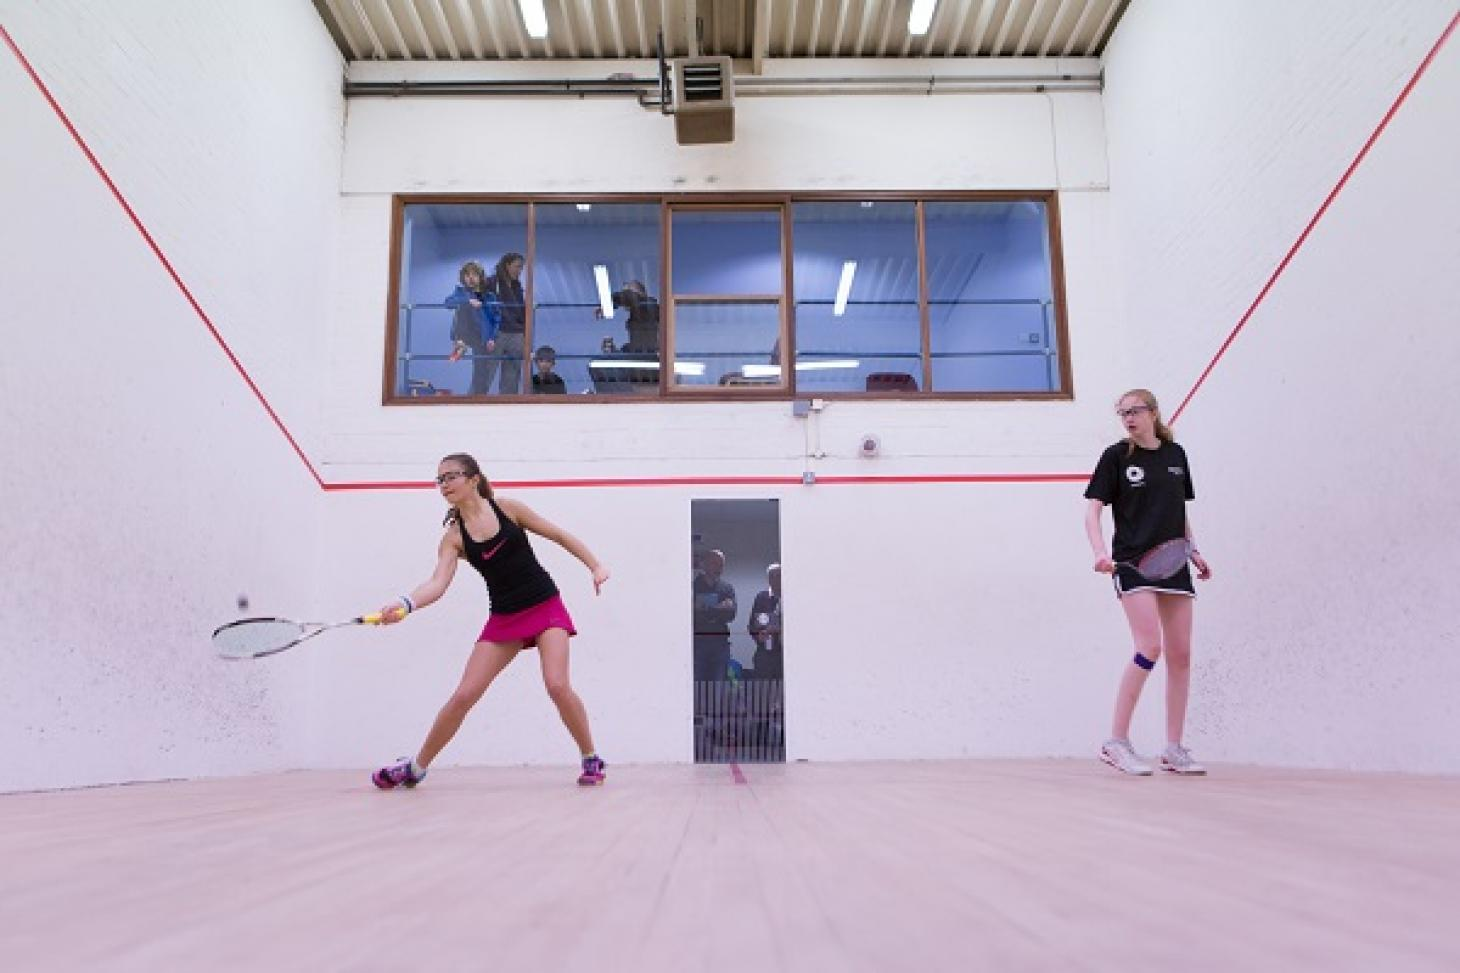 Lewsey Sports Park Indoor | Hard squash court